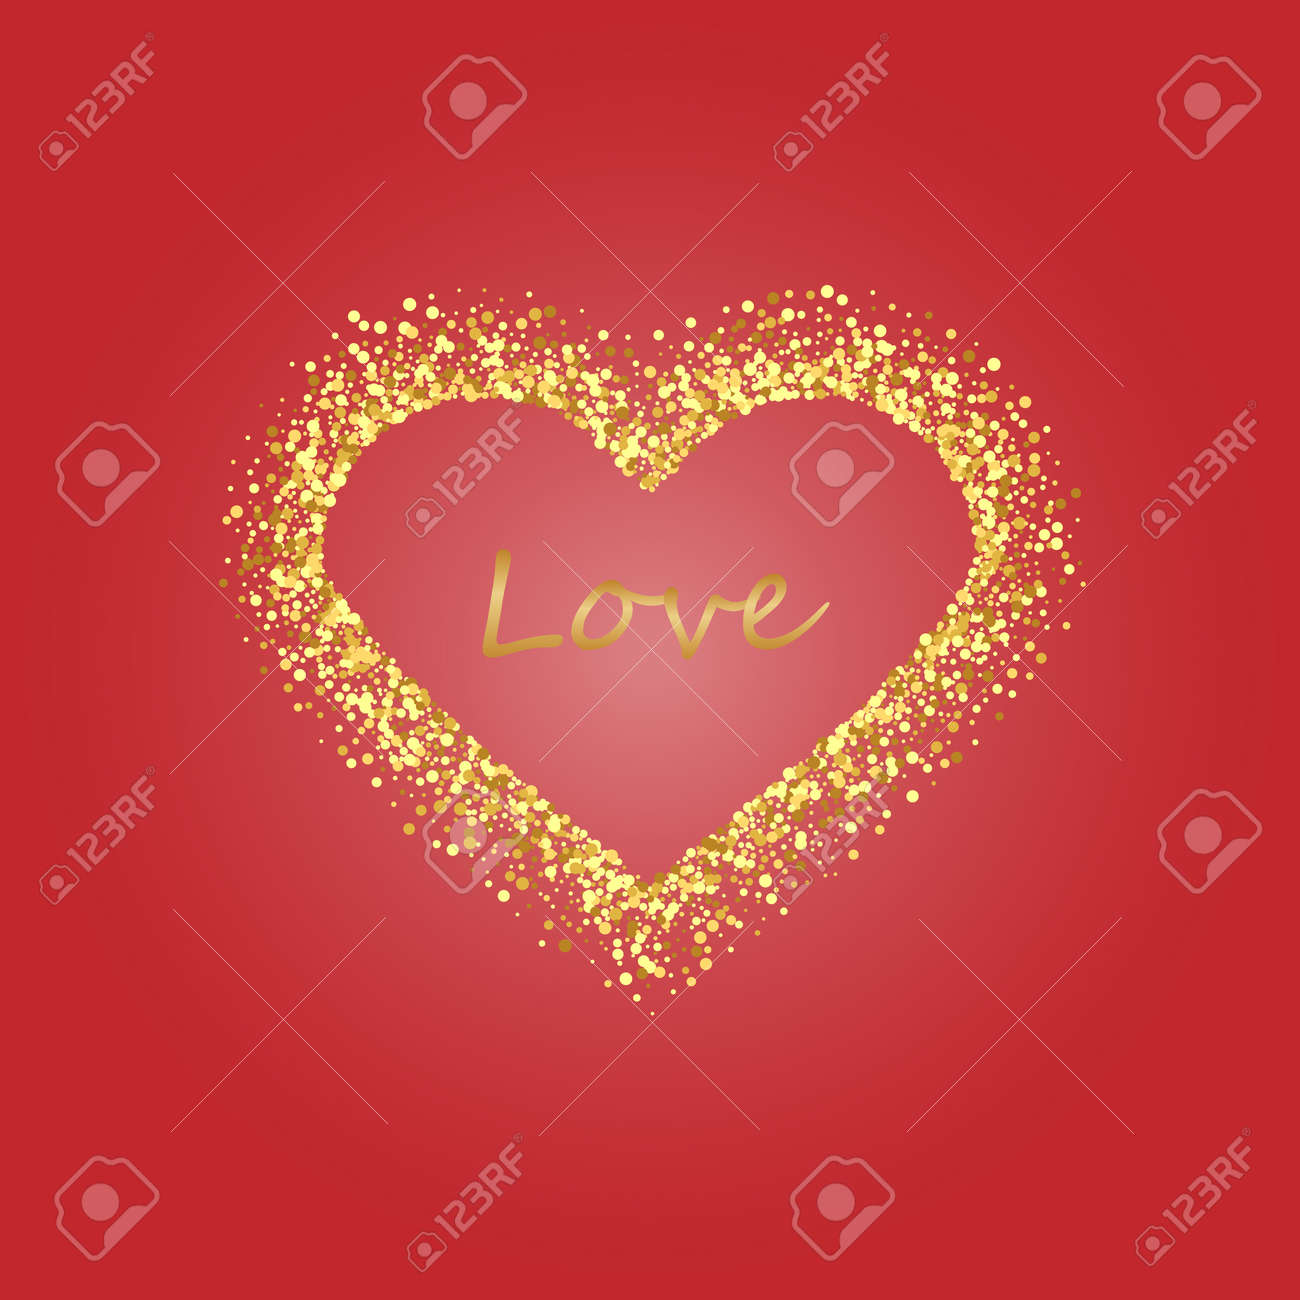 Gold Frame Of Scatter Confetti In The Shape Of Heart. Border ...